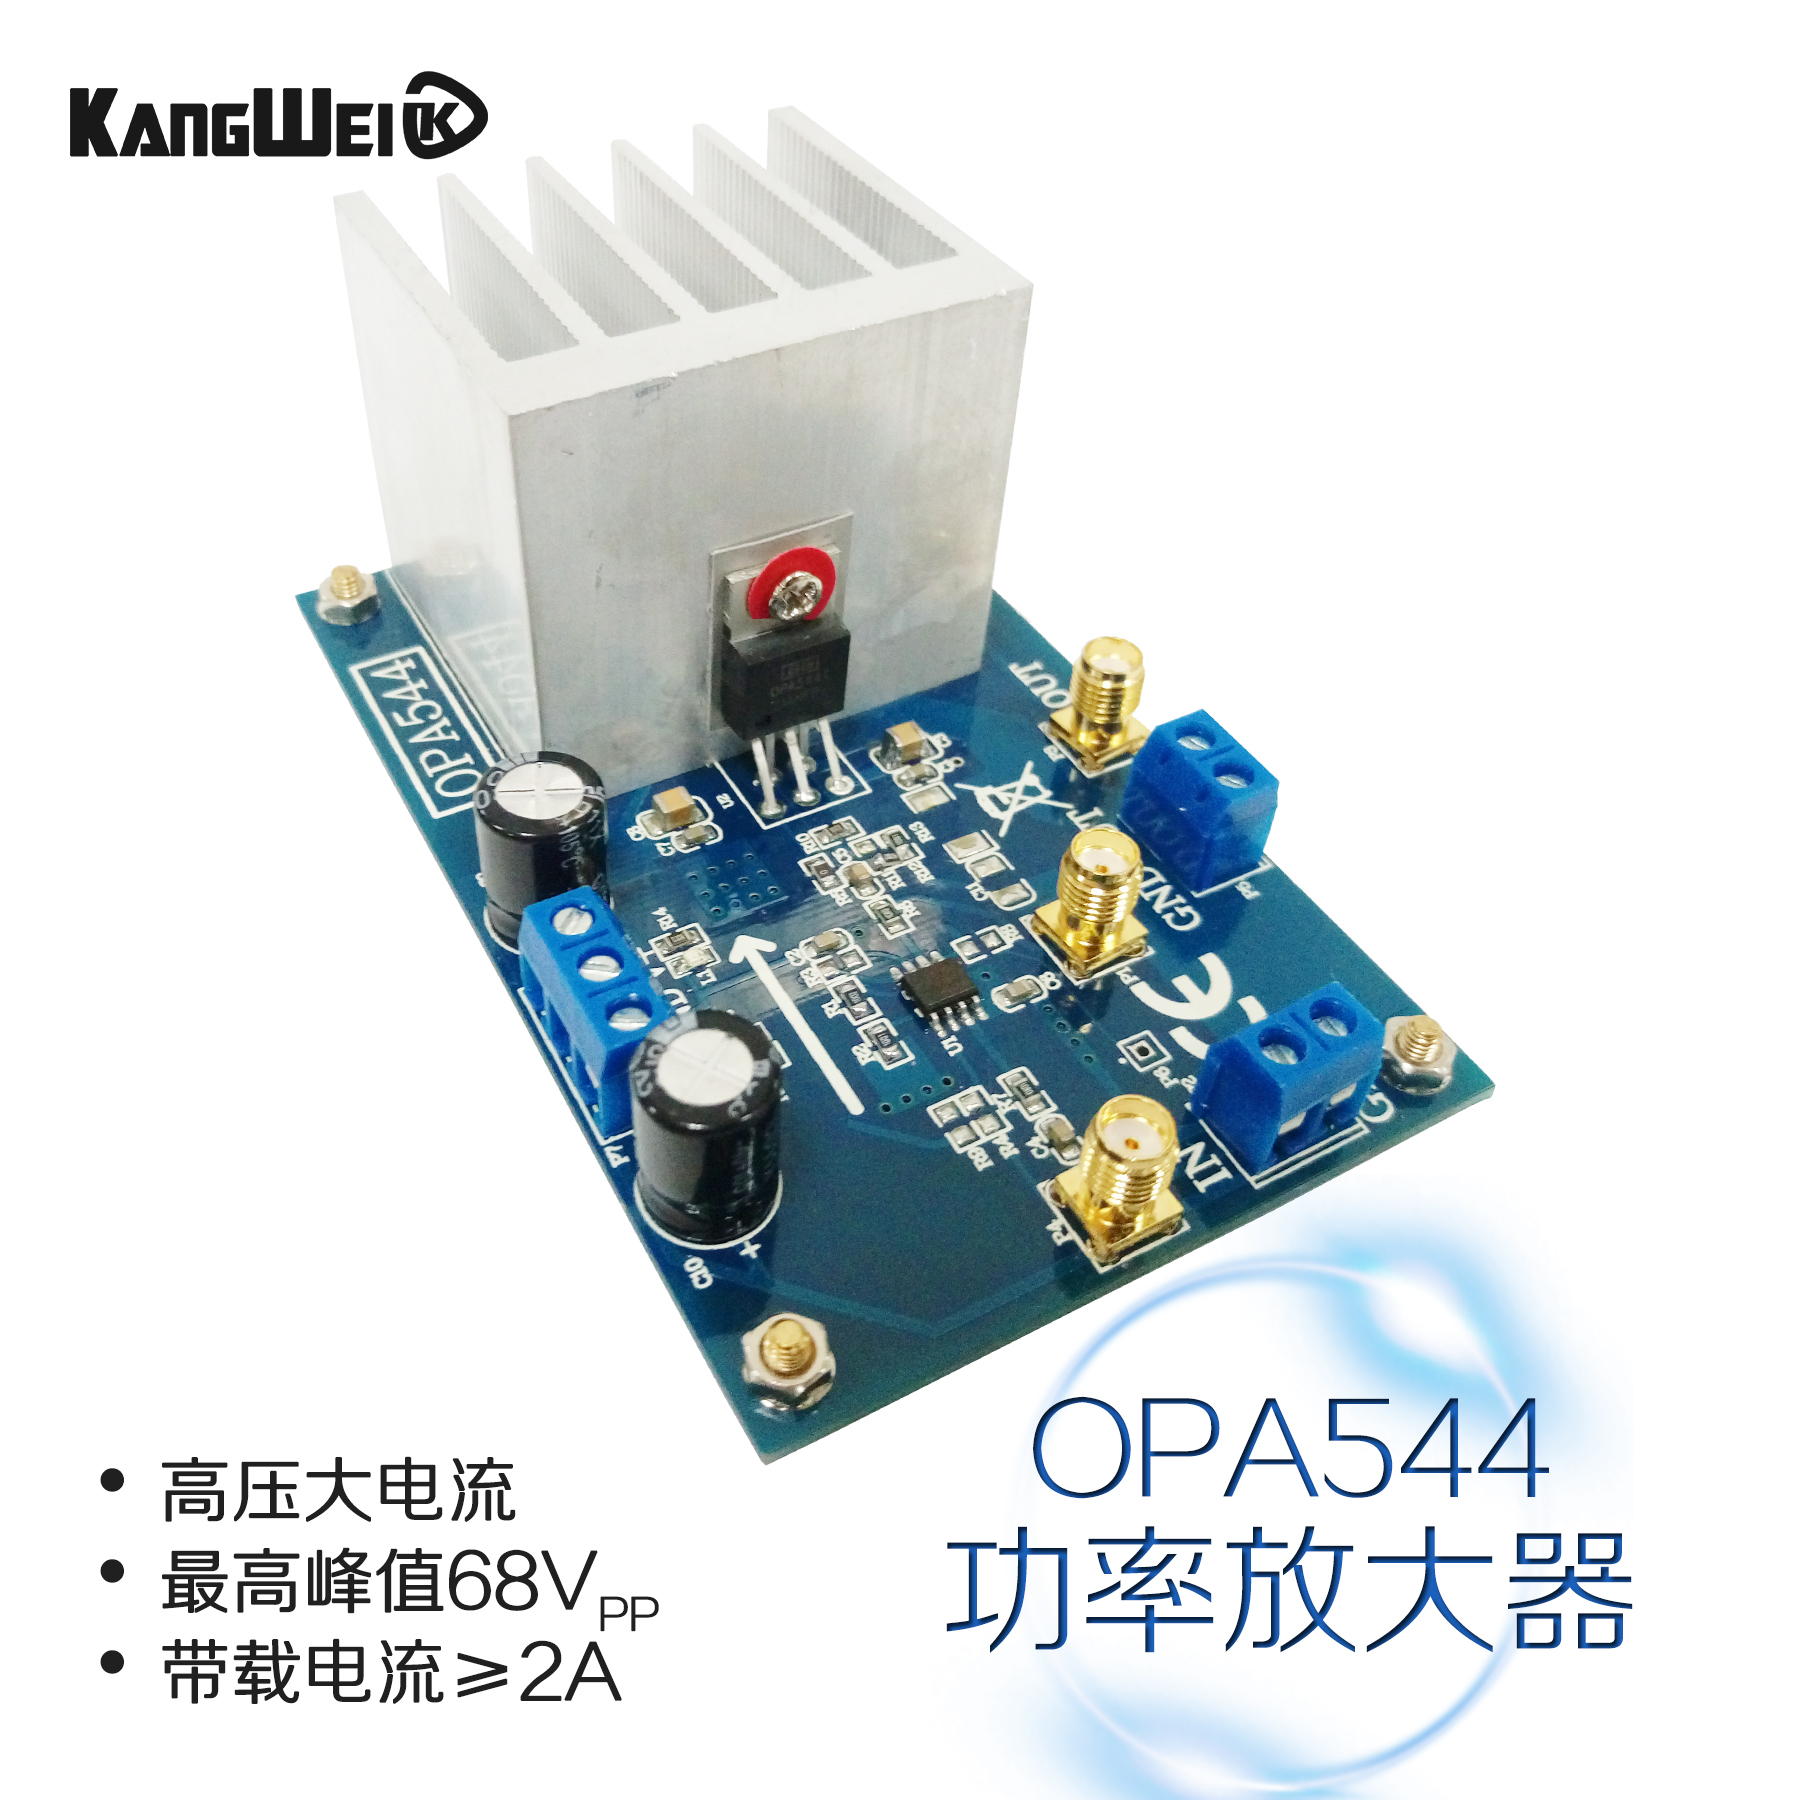 Power Amplifier High Voltage and High Current OPA544 Module 68V Peak 2A Current Carrying Motor Drive power amplifier high voltage high current opa544 module 68v peak 2a current motor drive